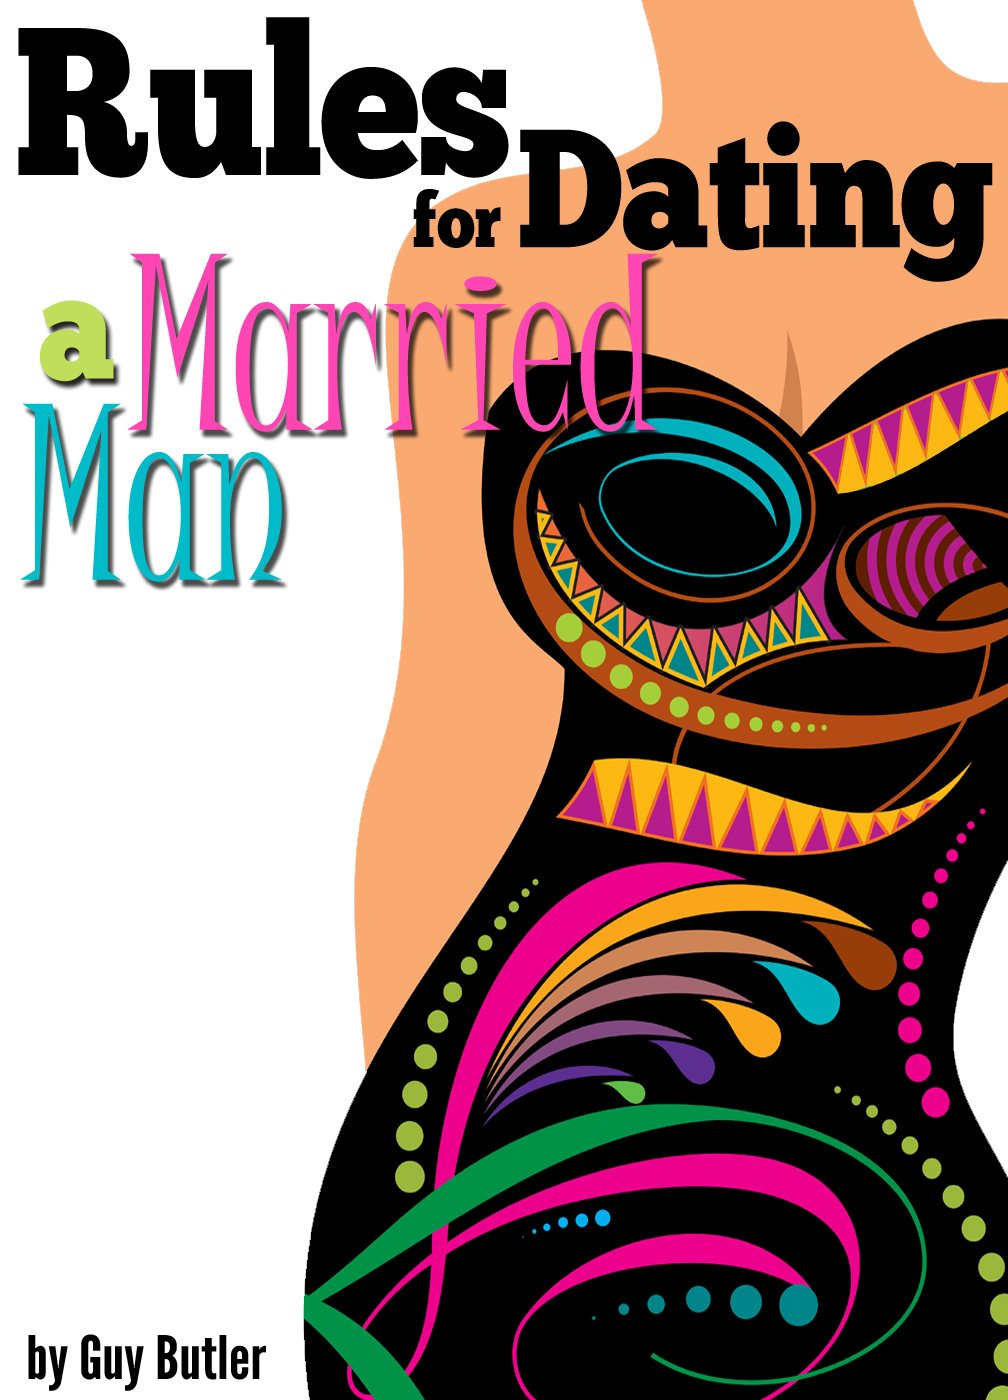 how to tell if you are dating a married man